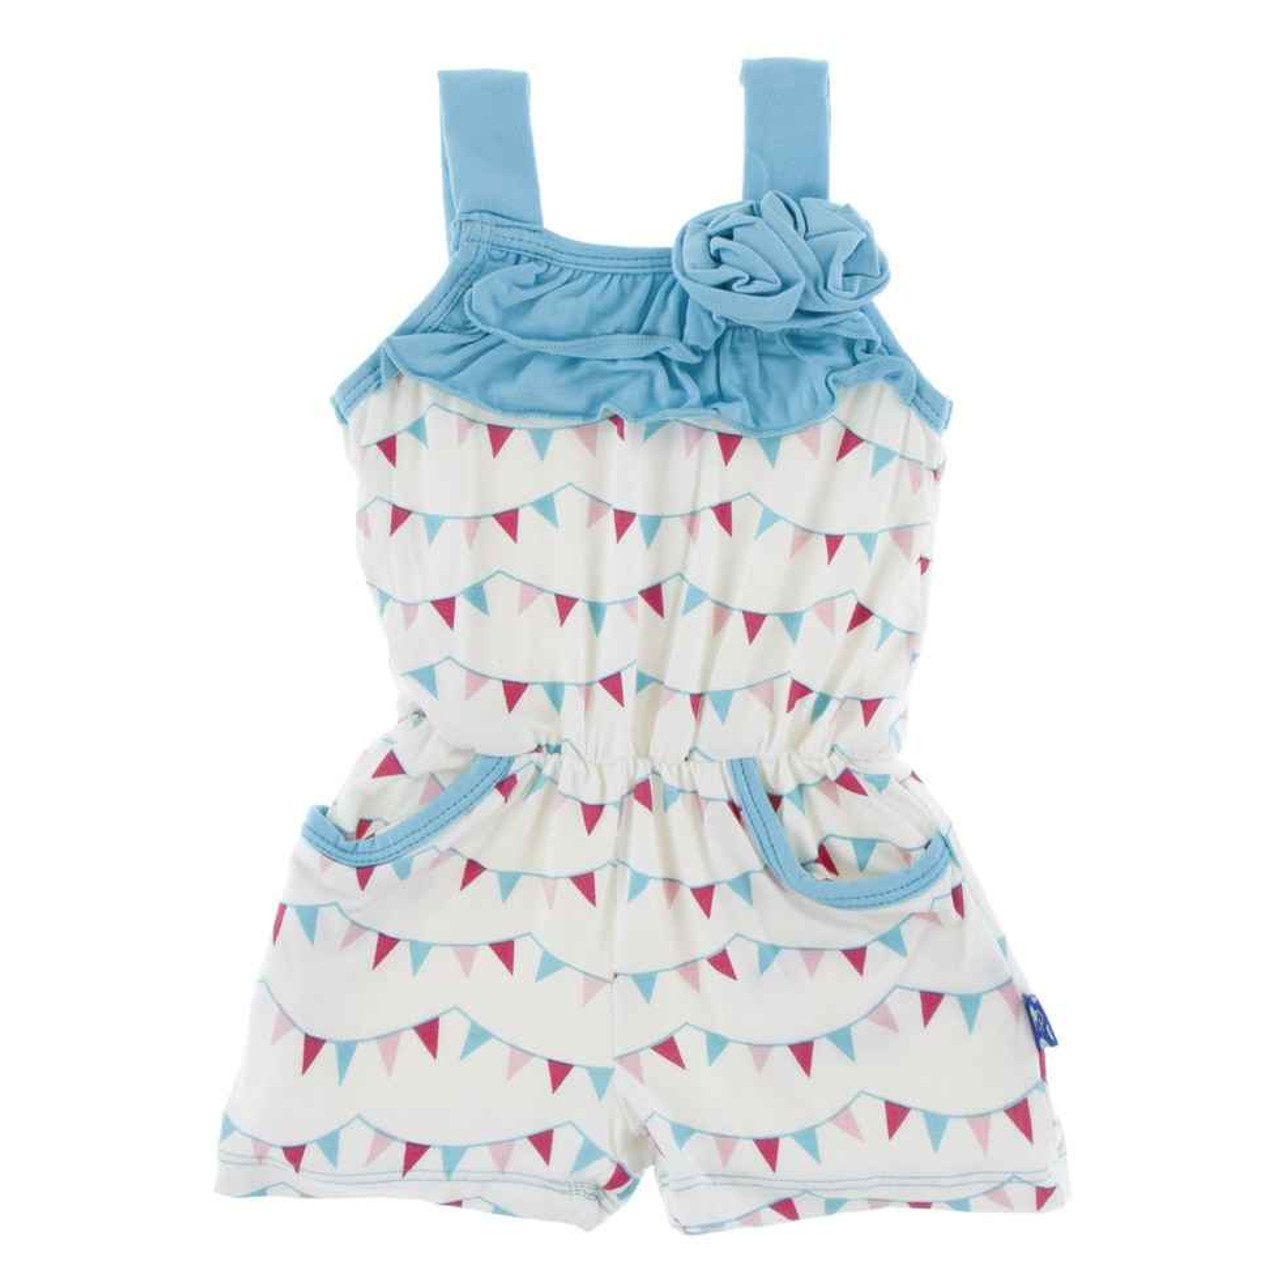 KicKee Pants Print Flower Romper with Pockets